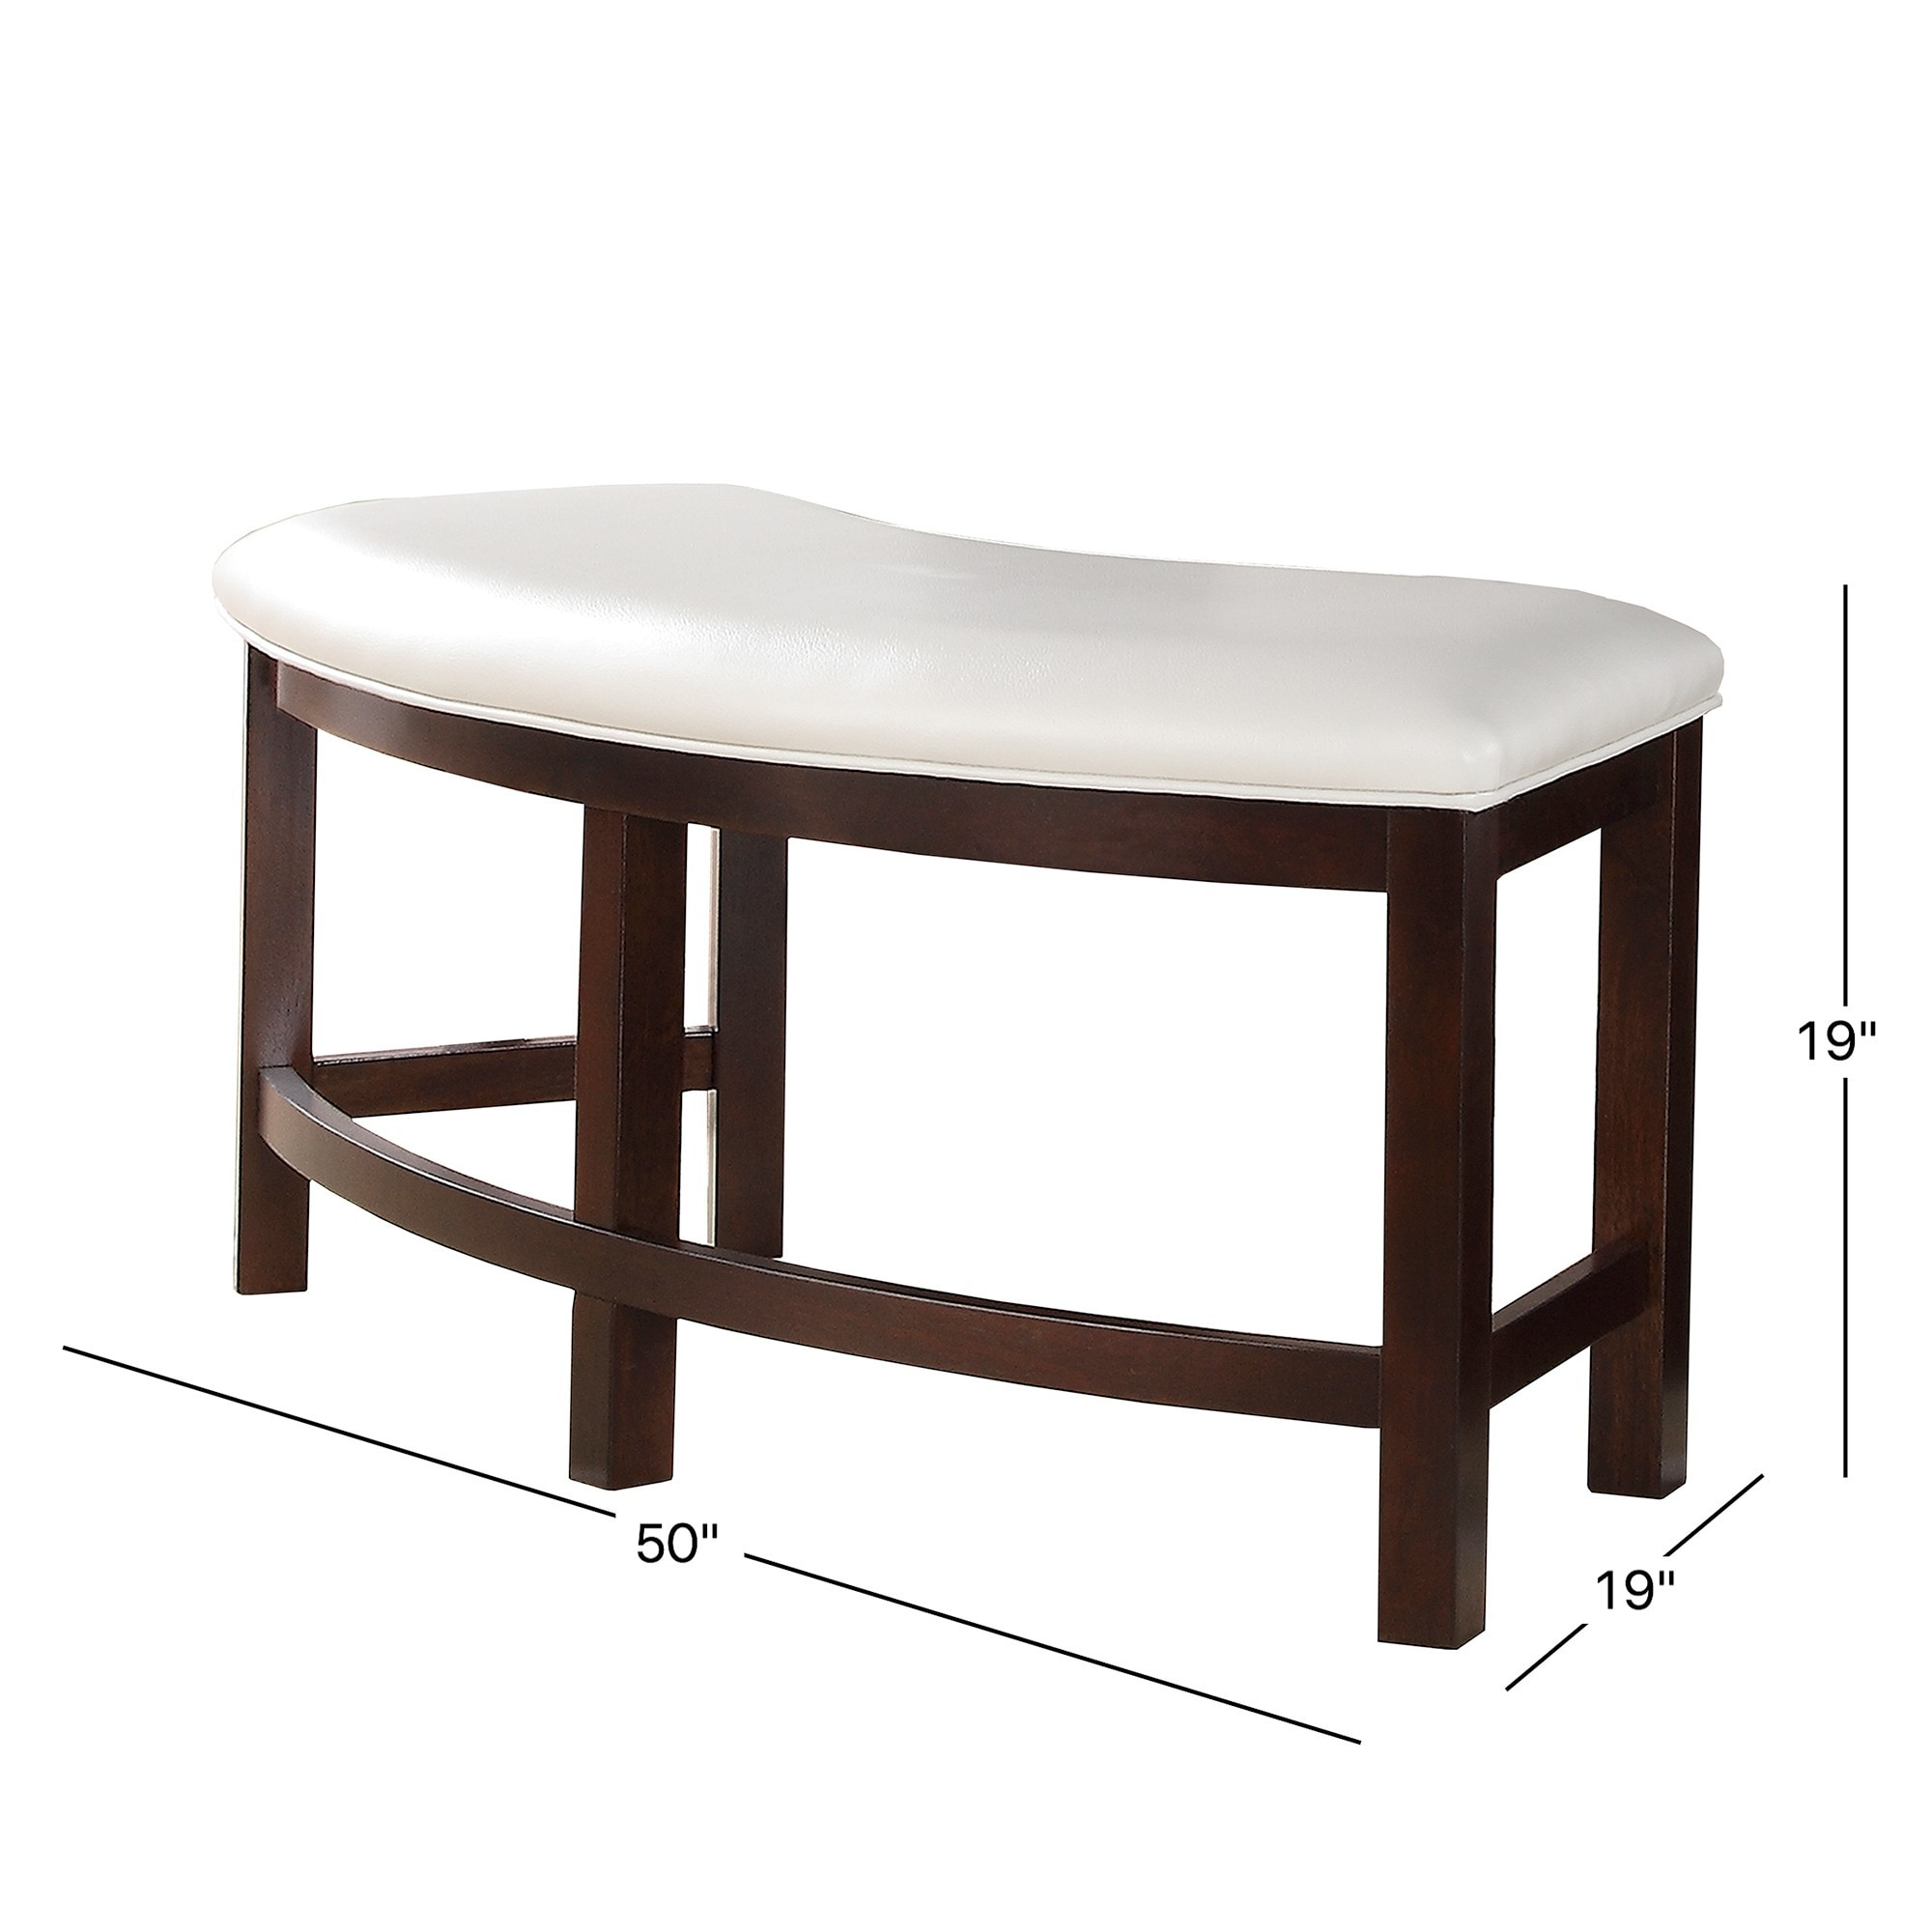 Shop Paradise Merlot Triangle Shaped 4 Piece Dining Set By INSPIRE Q Bold    Free Shipping Today   Overstock.com   4401060